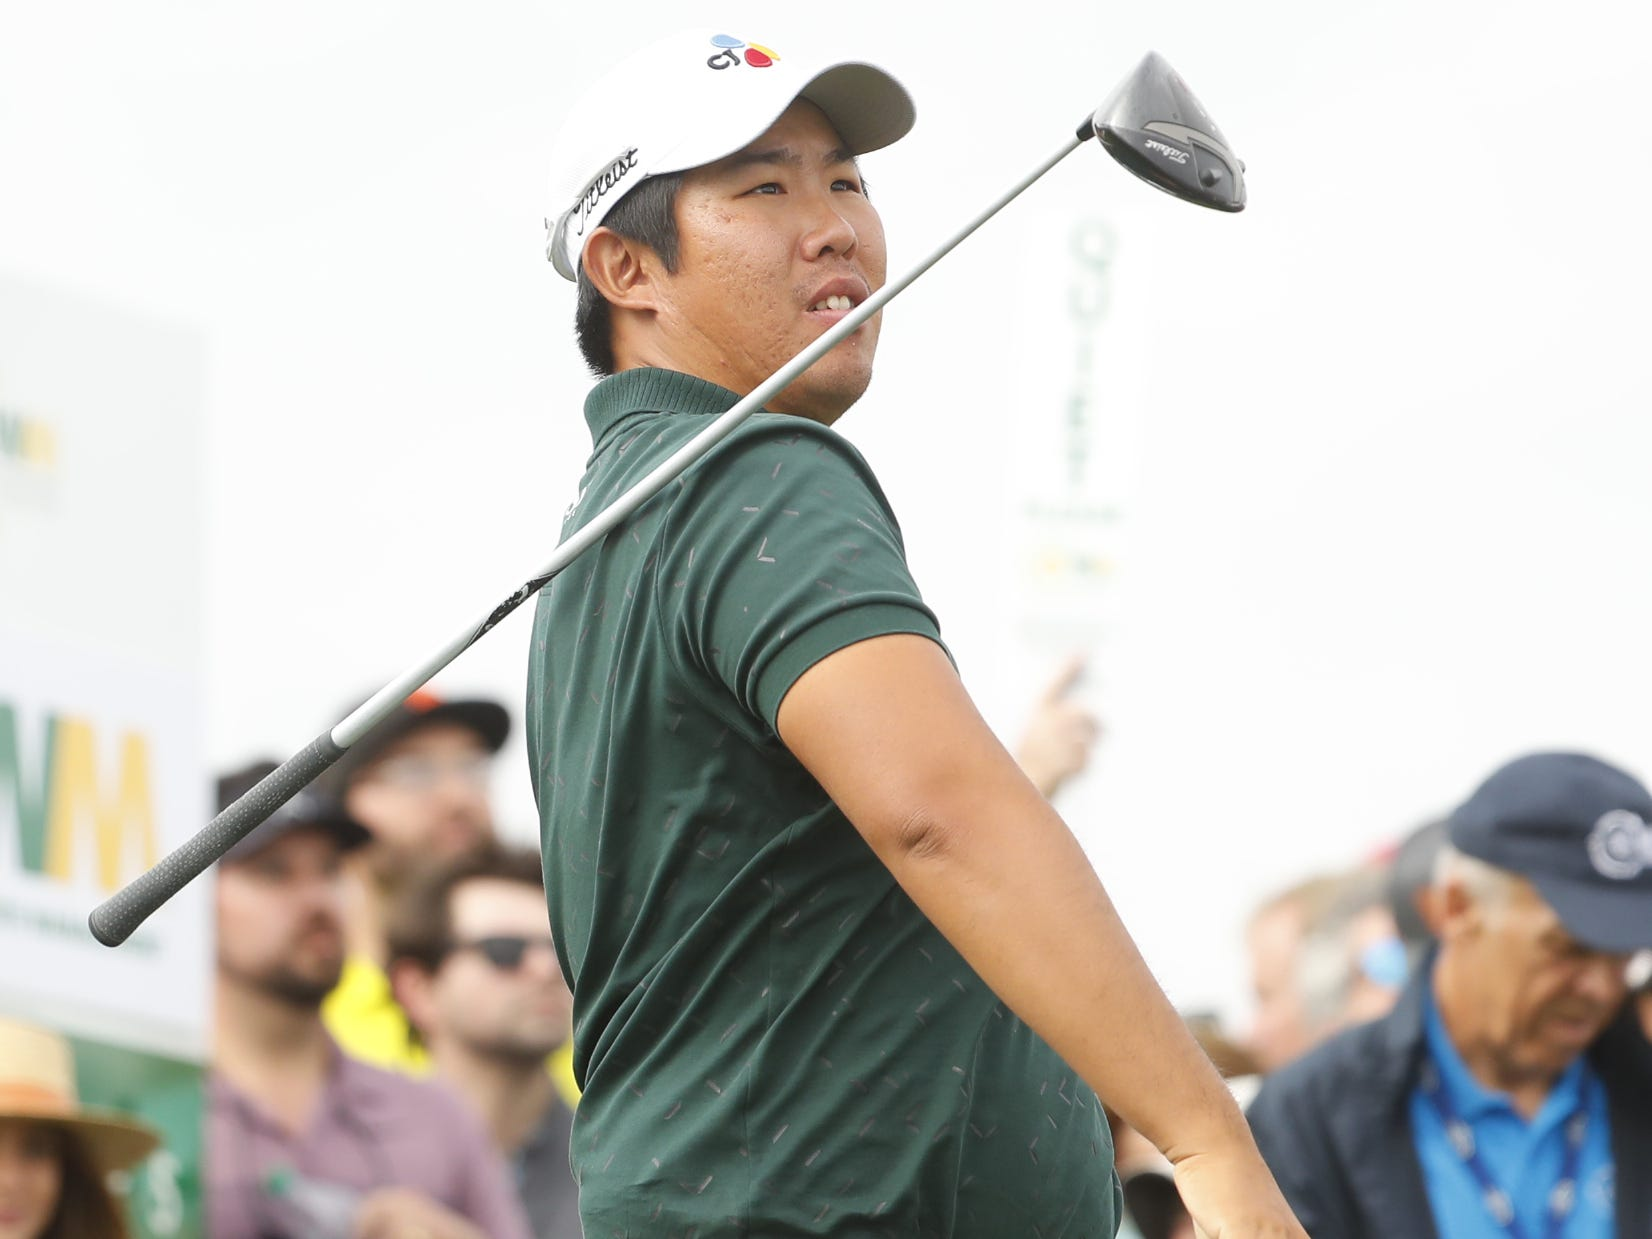 Byeong Hun An releases his club after hitting a tee shot on the 15th hole during the third round of the Waste Management Phoenix Open at TPC Scottsdale in Scottsdale, Ariz. on February 2, 2019.